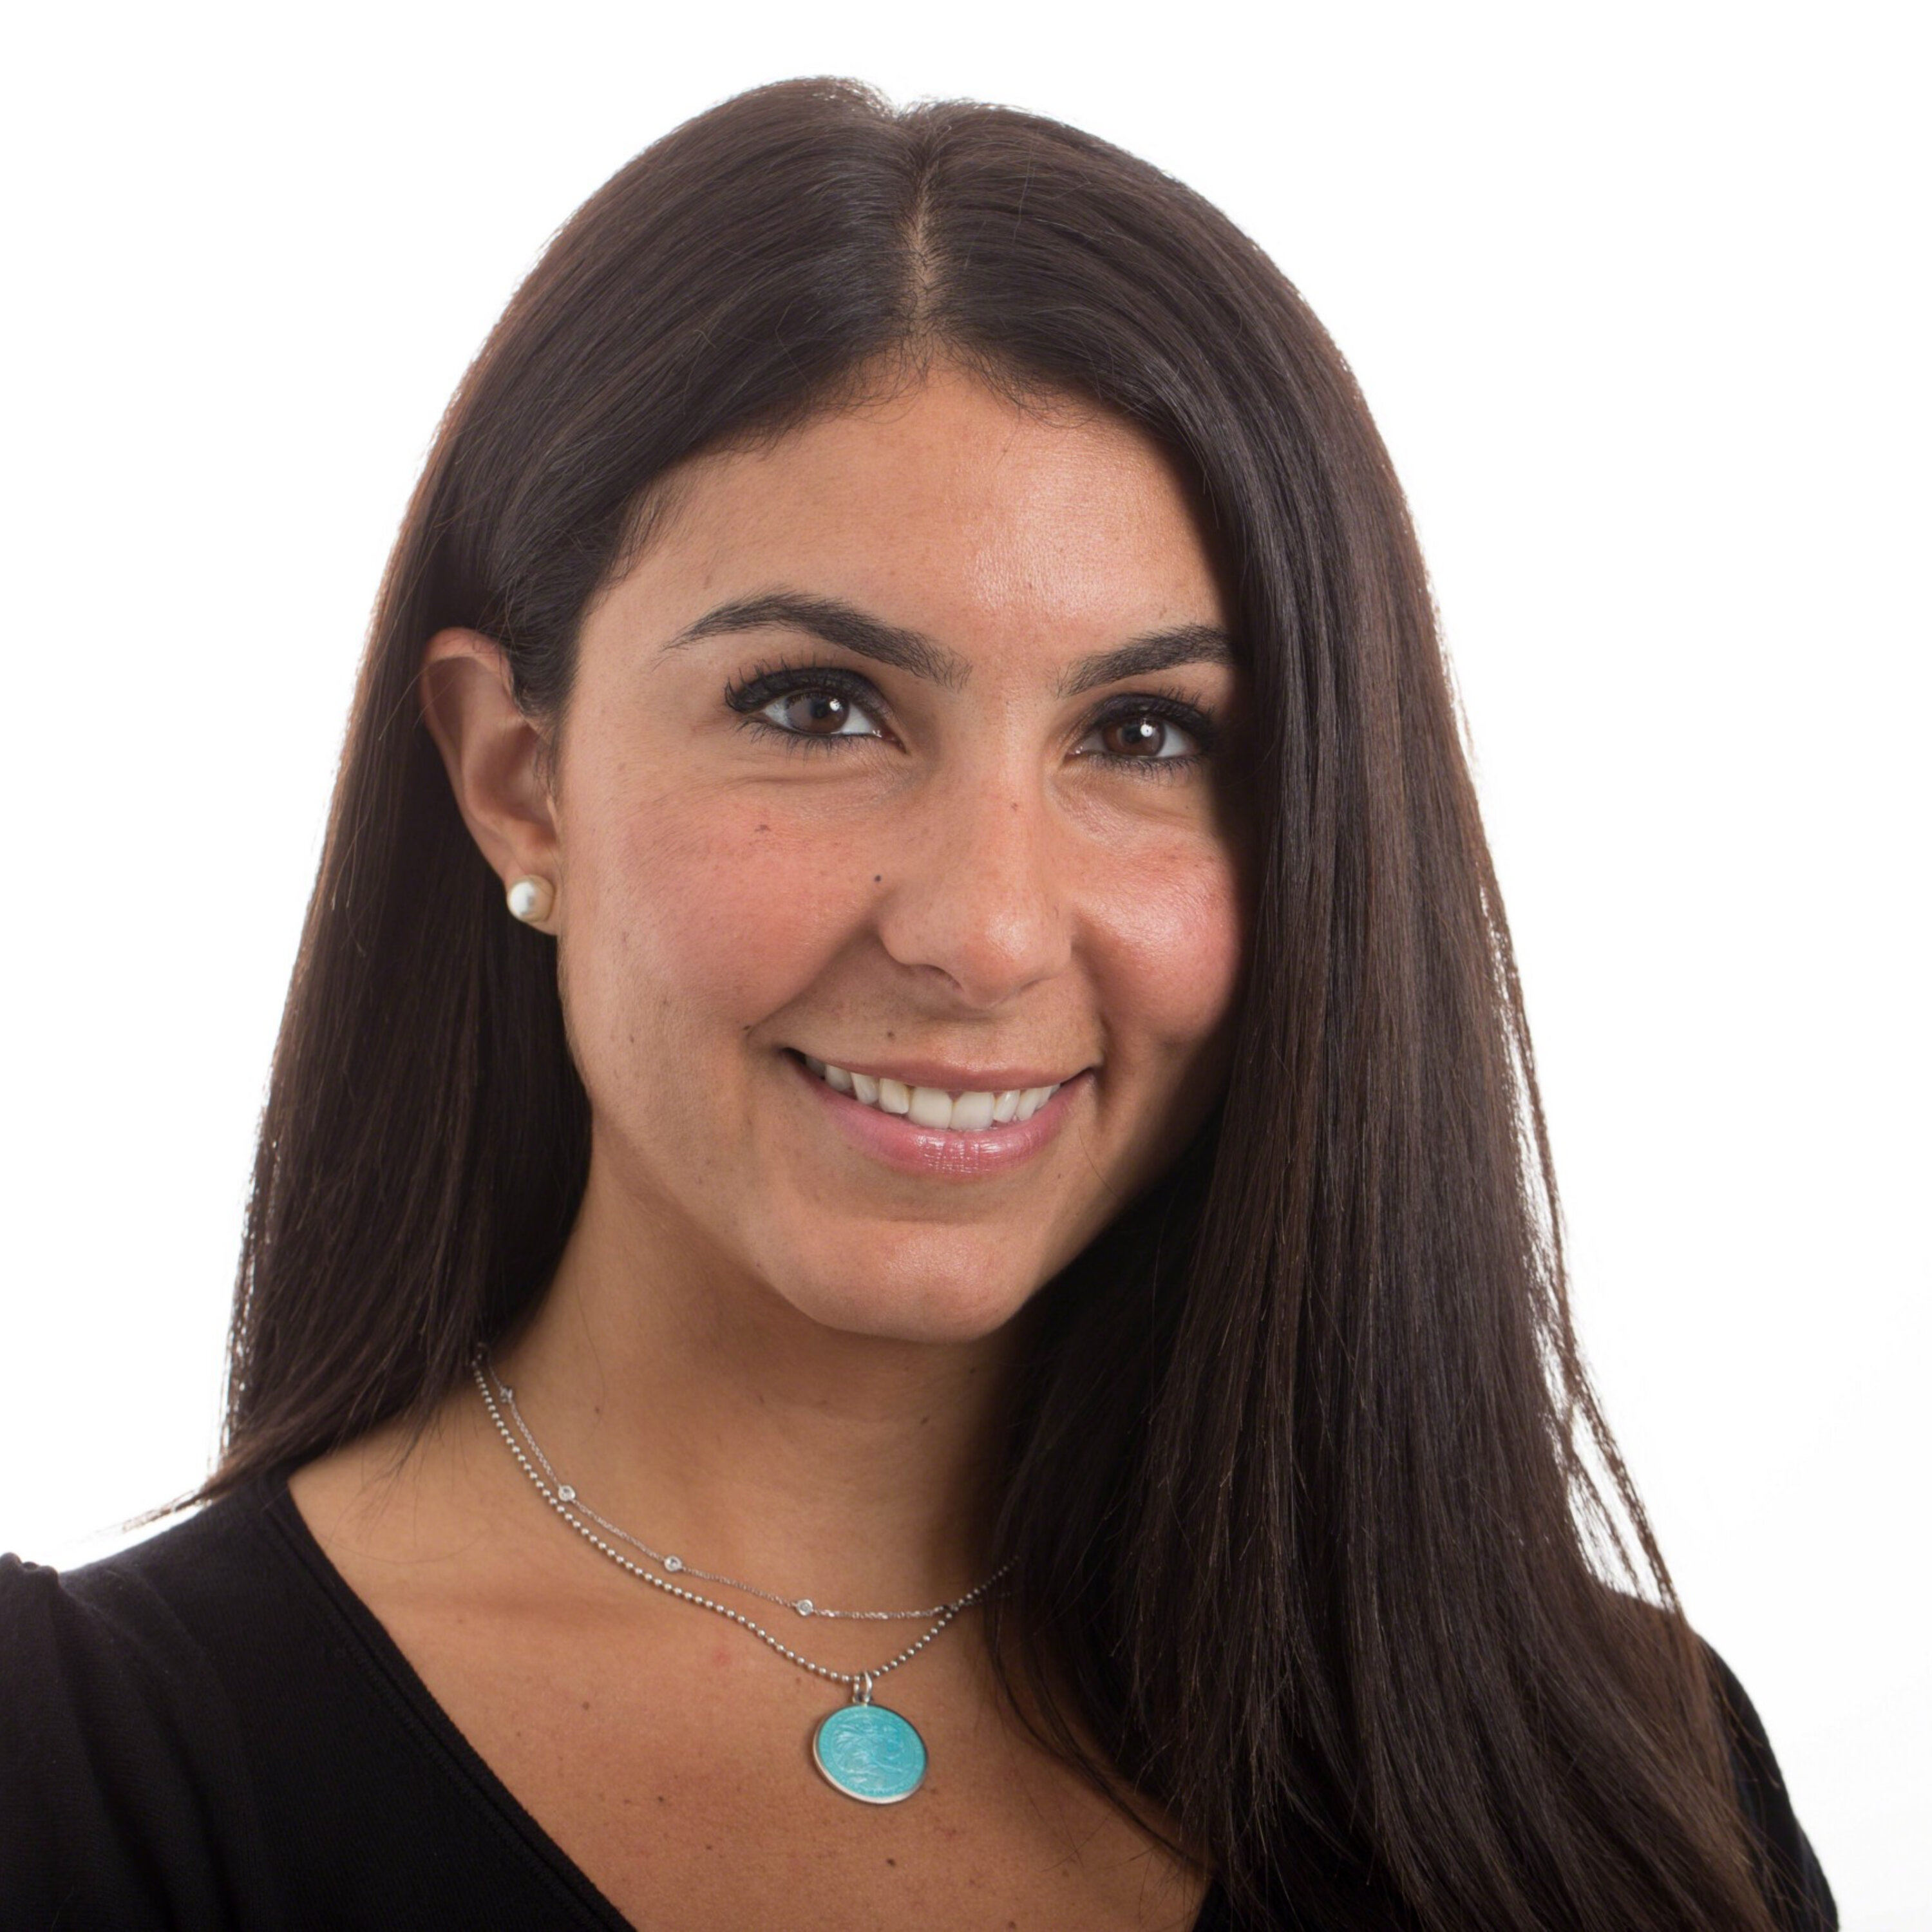 Kelly DeRosa of IgnitionOne - A Vibrant Retail Marketing Landscape